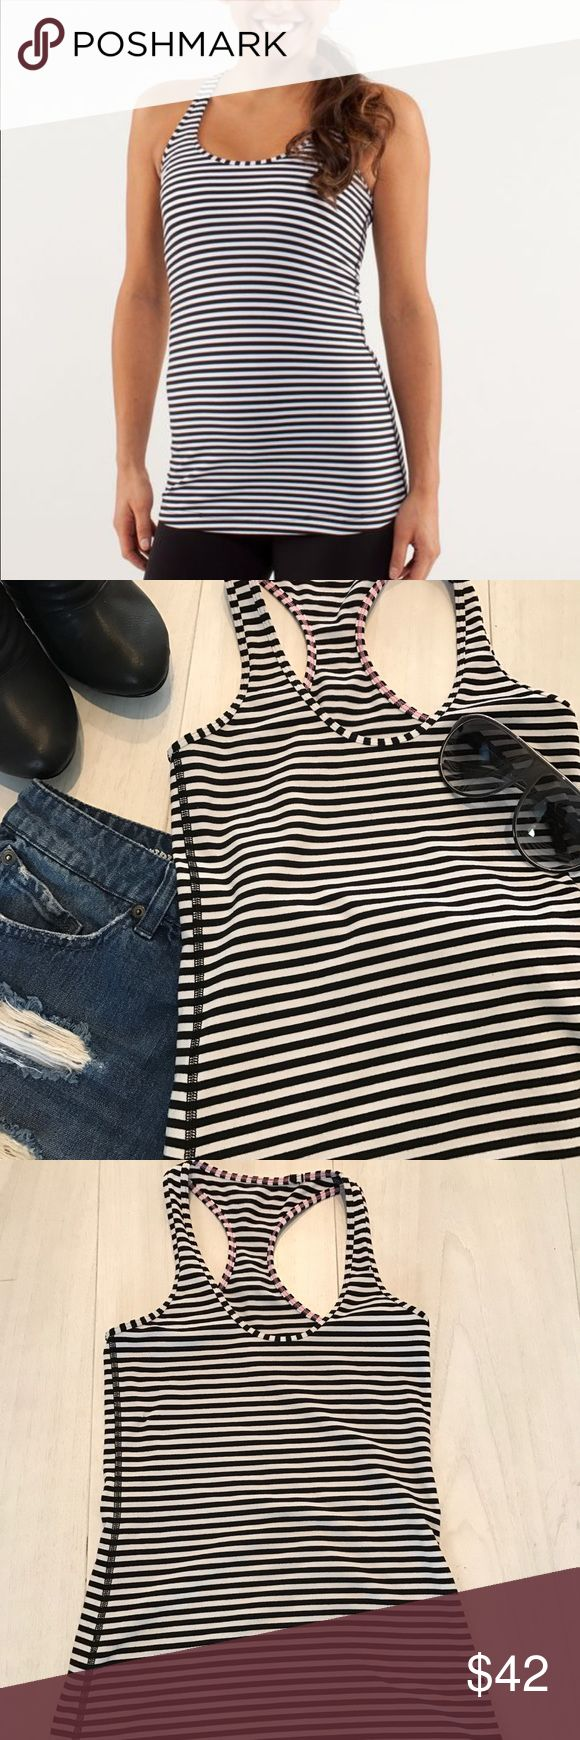 🆕Lululemon Cool Razorback Tank Gently worn, Lululemon cool razorback tank. Size tag removed but fits like a 4. White and black striped with pink stitching. Please use the offer button and bundle for a discount. Thanks 💋 lululemon athletica Tops Tank Tops